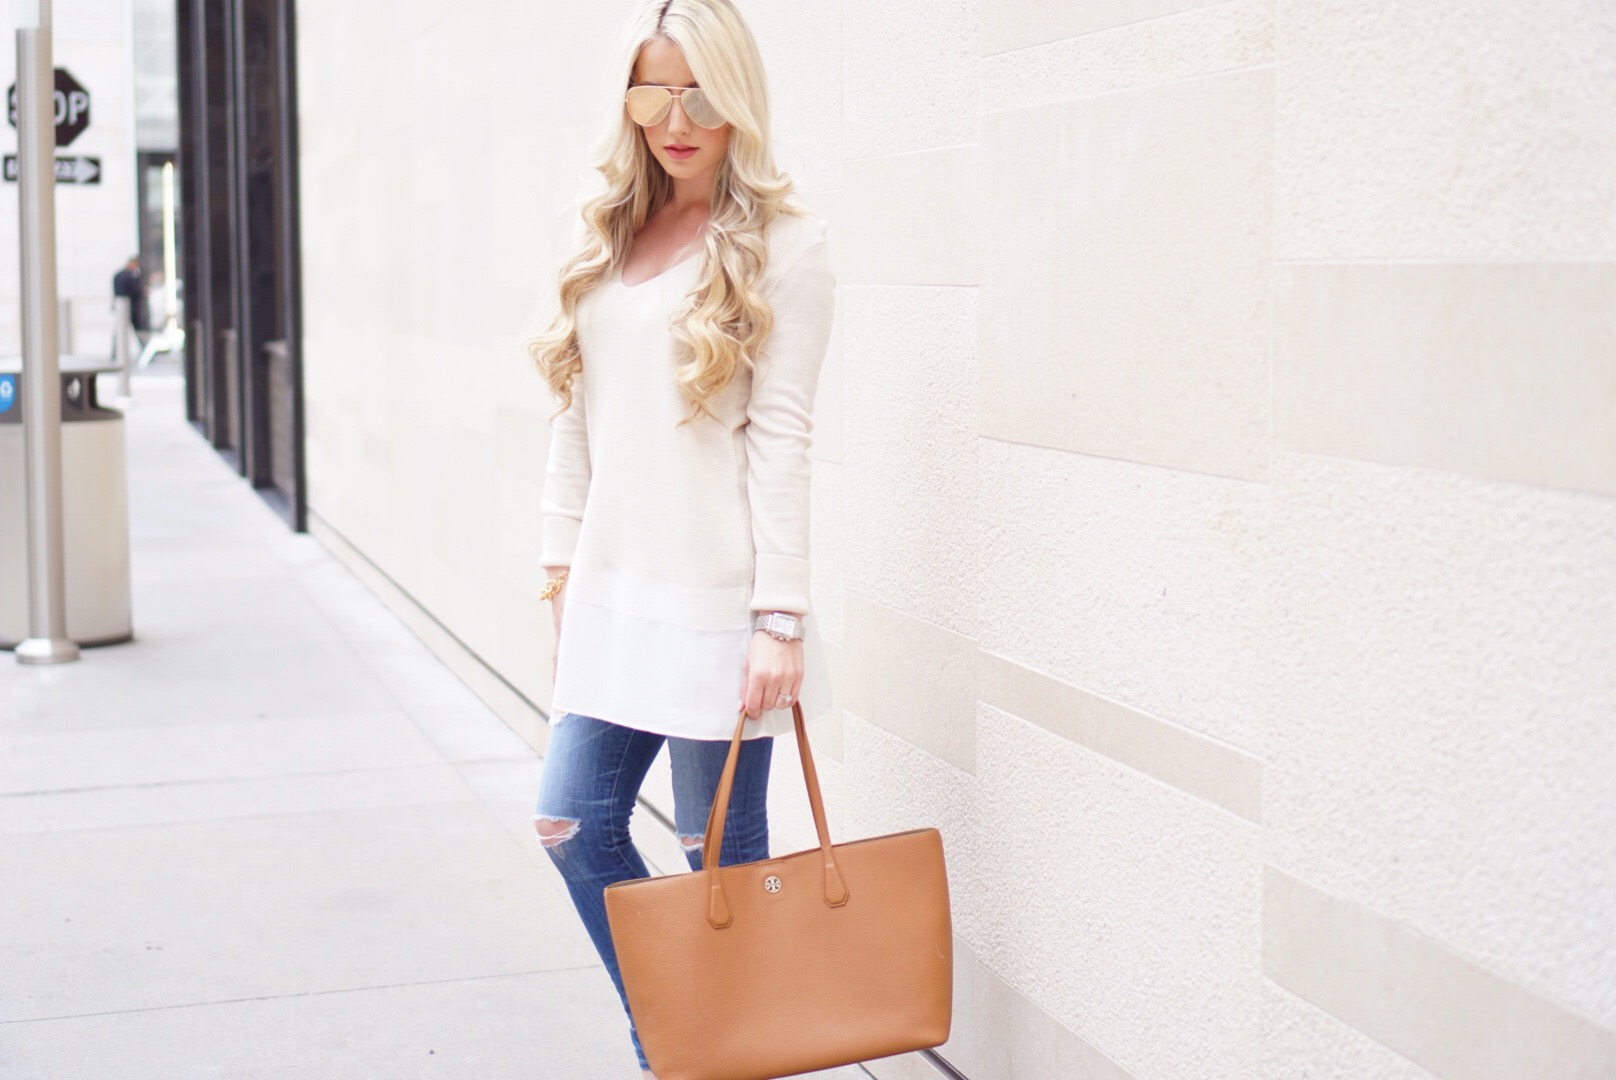 72a45828c7 ... Long Cream Sweater A Touch of Pink Blog Katelyn Jones Oversized Tory  Burch Tote ...